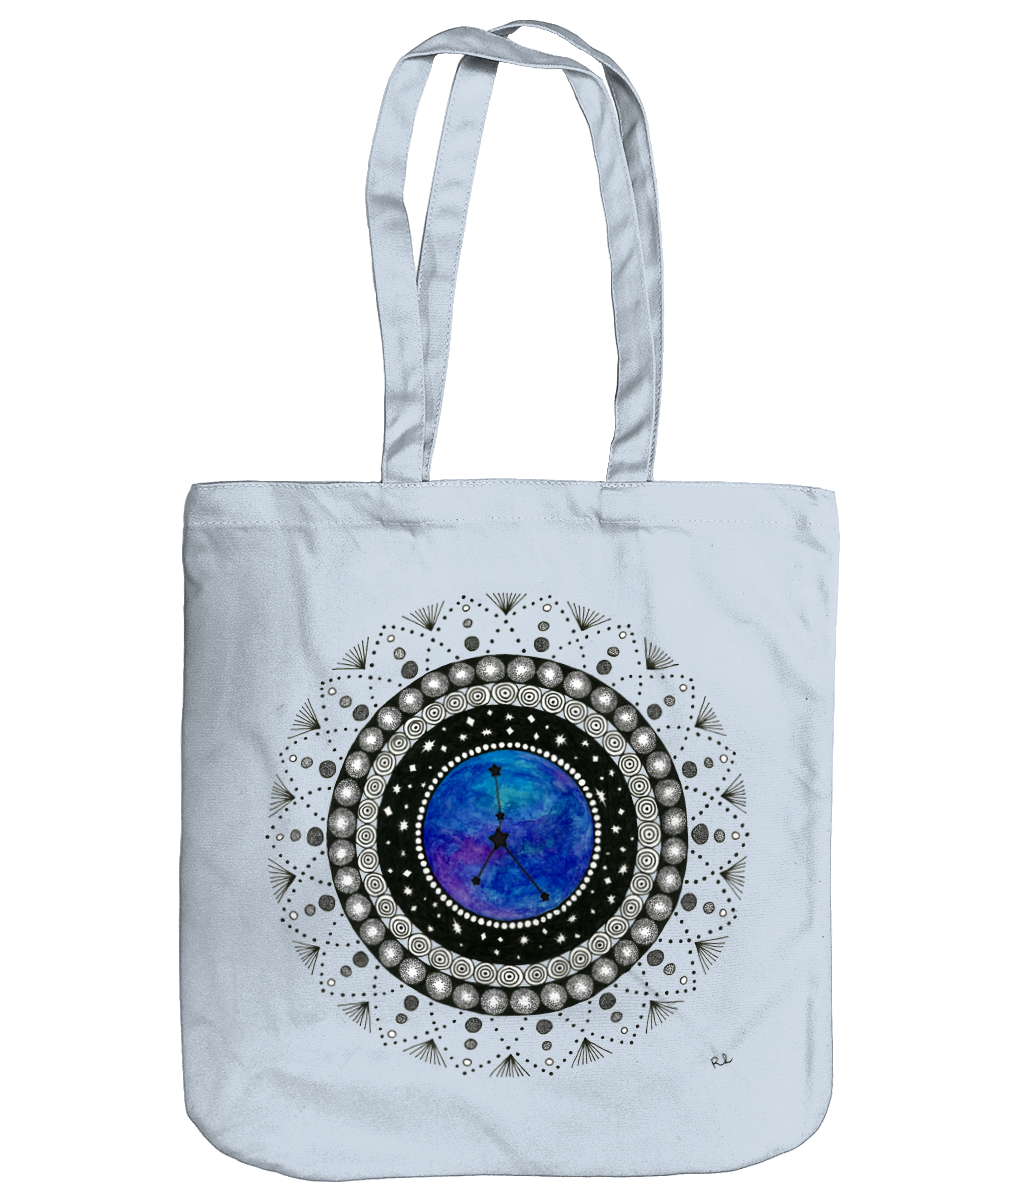 EarthAware Organic Tote 'Cancer' - Rebecca Leah Designs